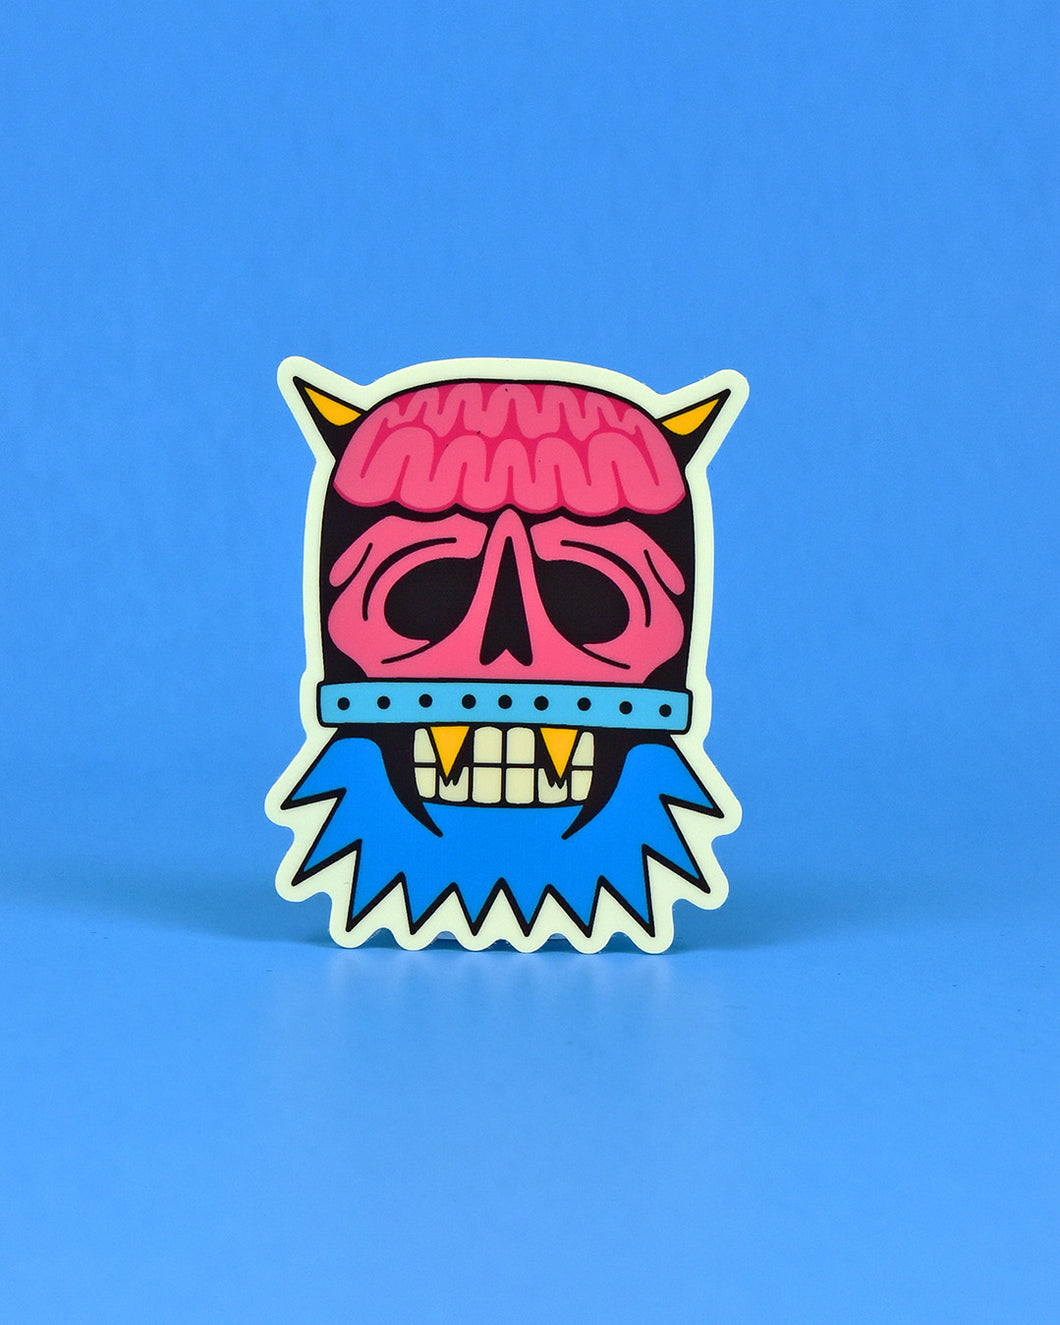 Vinyl sticker of DomeHead, featuring half their face a pink skull and exposed brain encapsulated in a clear dome that is secured with a metal band above the lip, and the other half a blue-bearded, teeth clenched face with 2 gold k-9 teeth. Eye sockets and nasal opening of skull half are hollow. Yellow horns protrude from the top of the dome.